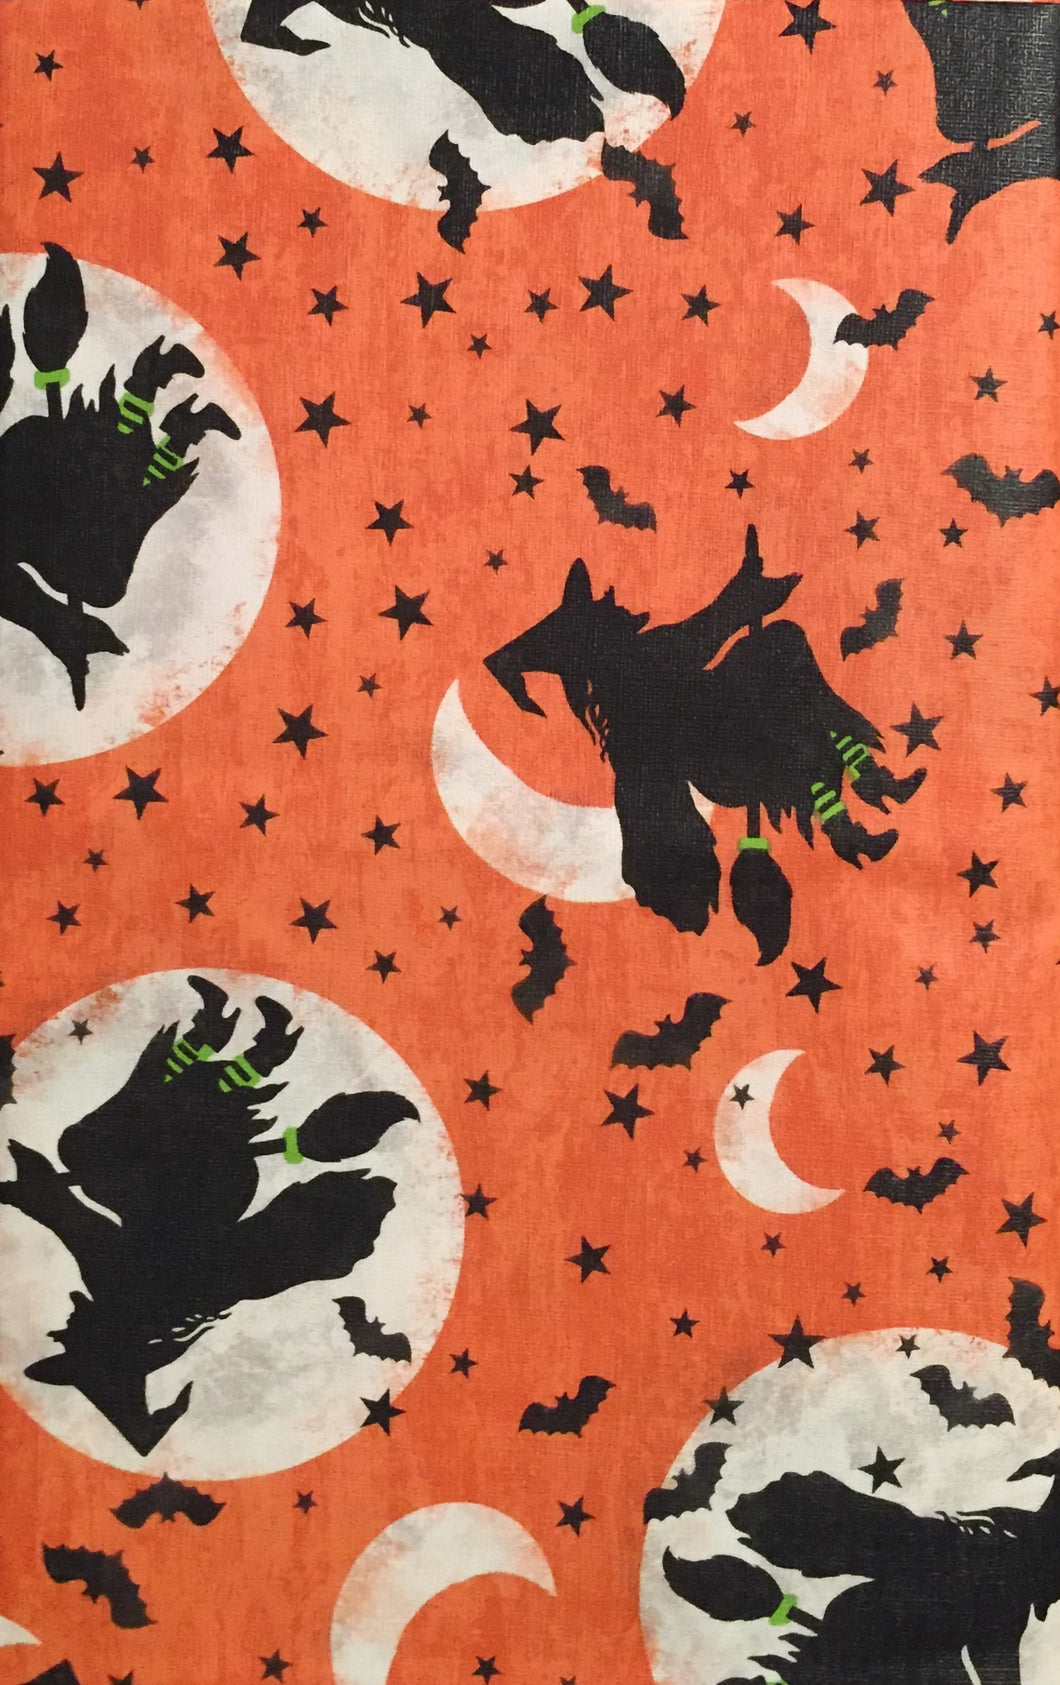 Halloween Witches Bats on Orange Vinyl Flannel Back Tablecloth 52 x 70 Oblong